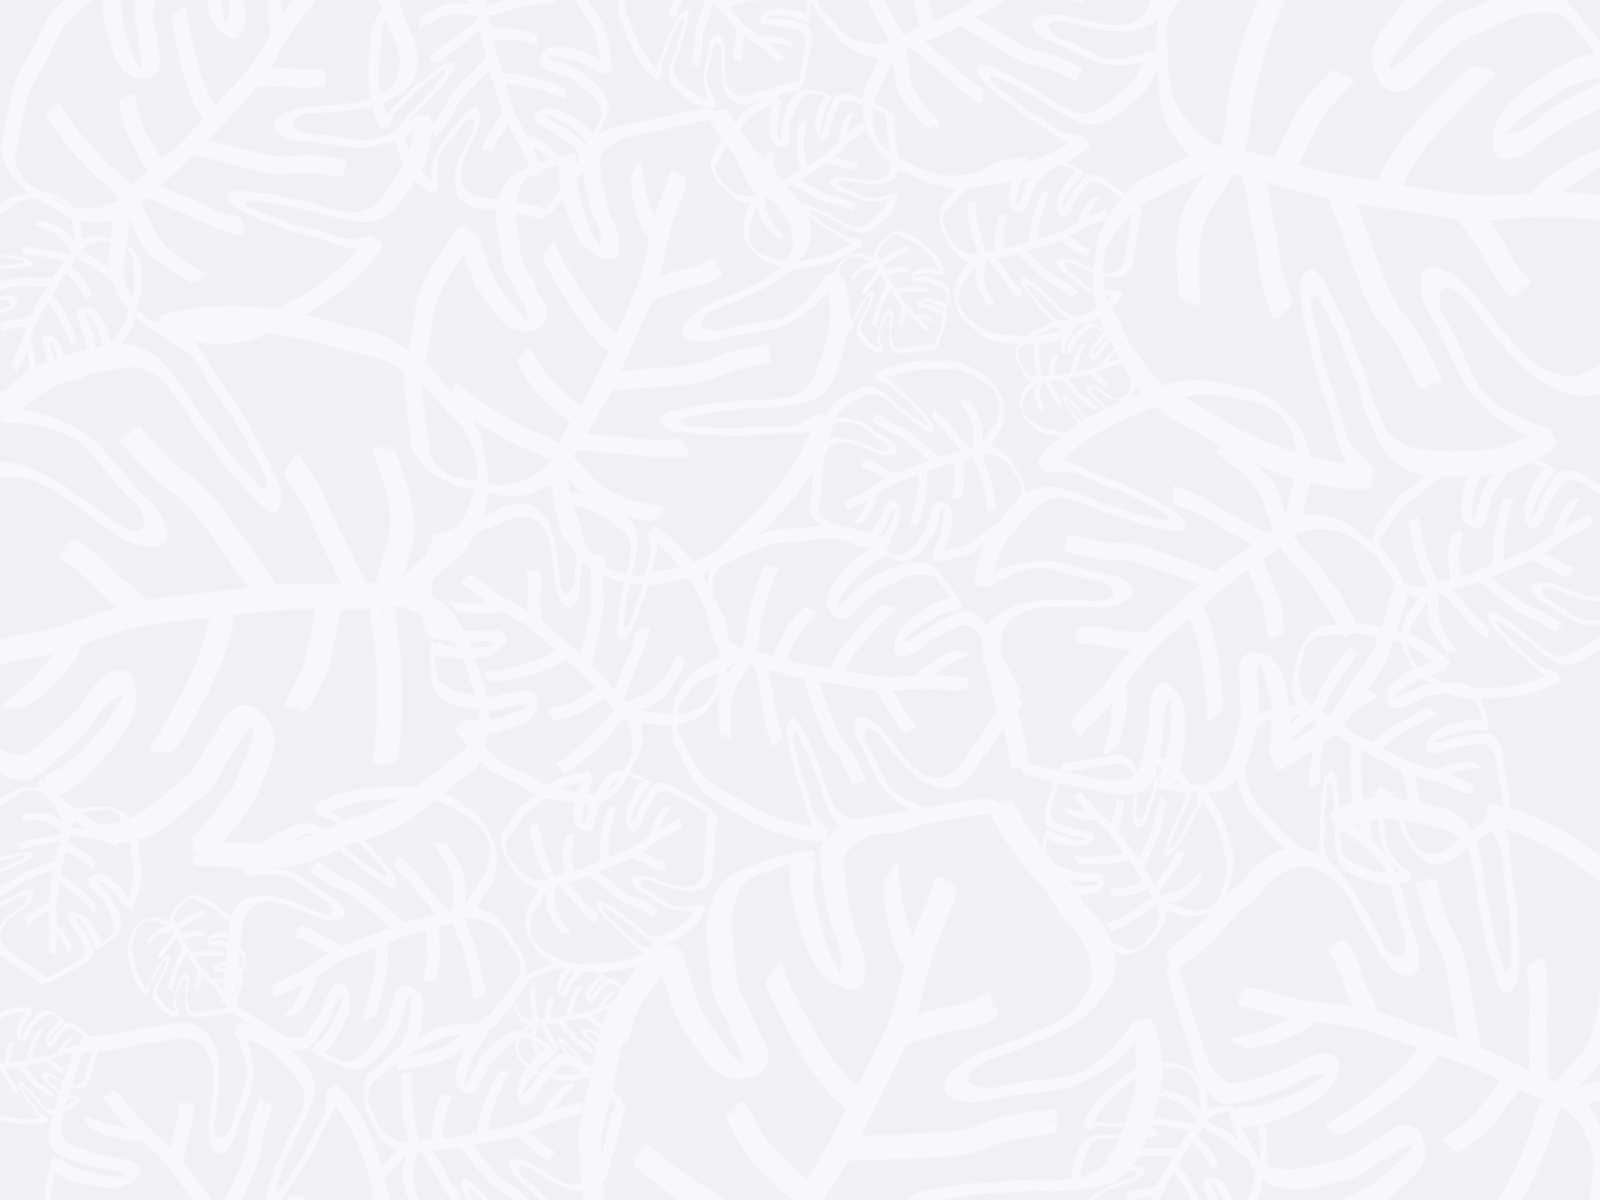 white palm print wallpaper by cocorie d7fwc3rjpg 1600x1200